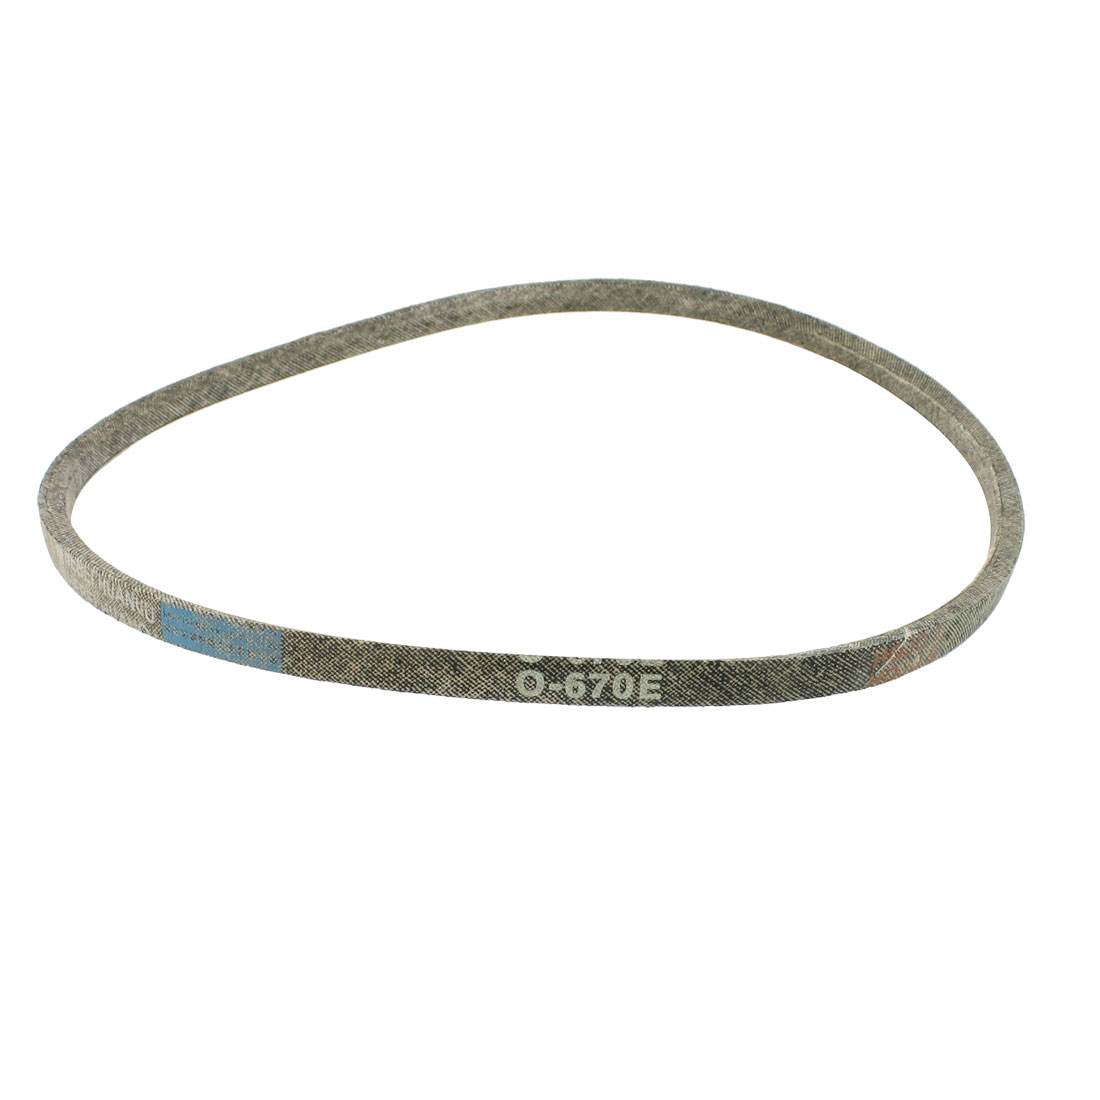 O-670E Washing Machine Motor Inner Girth 670mm V Belt Top Width 10mm